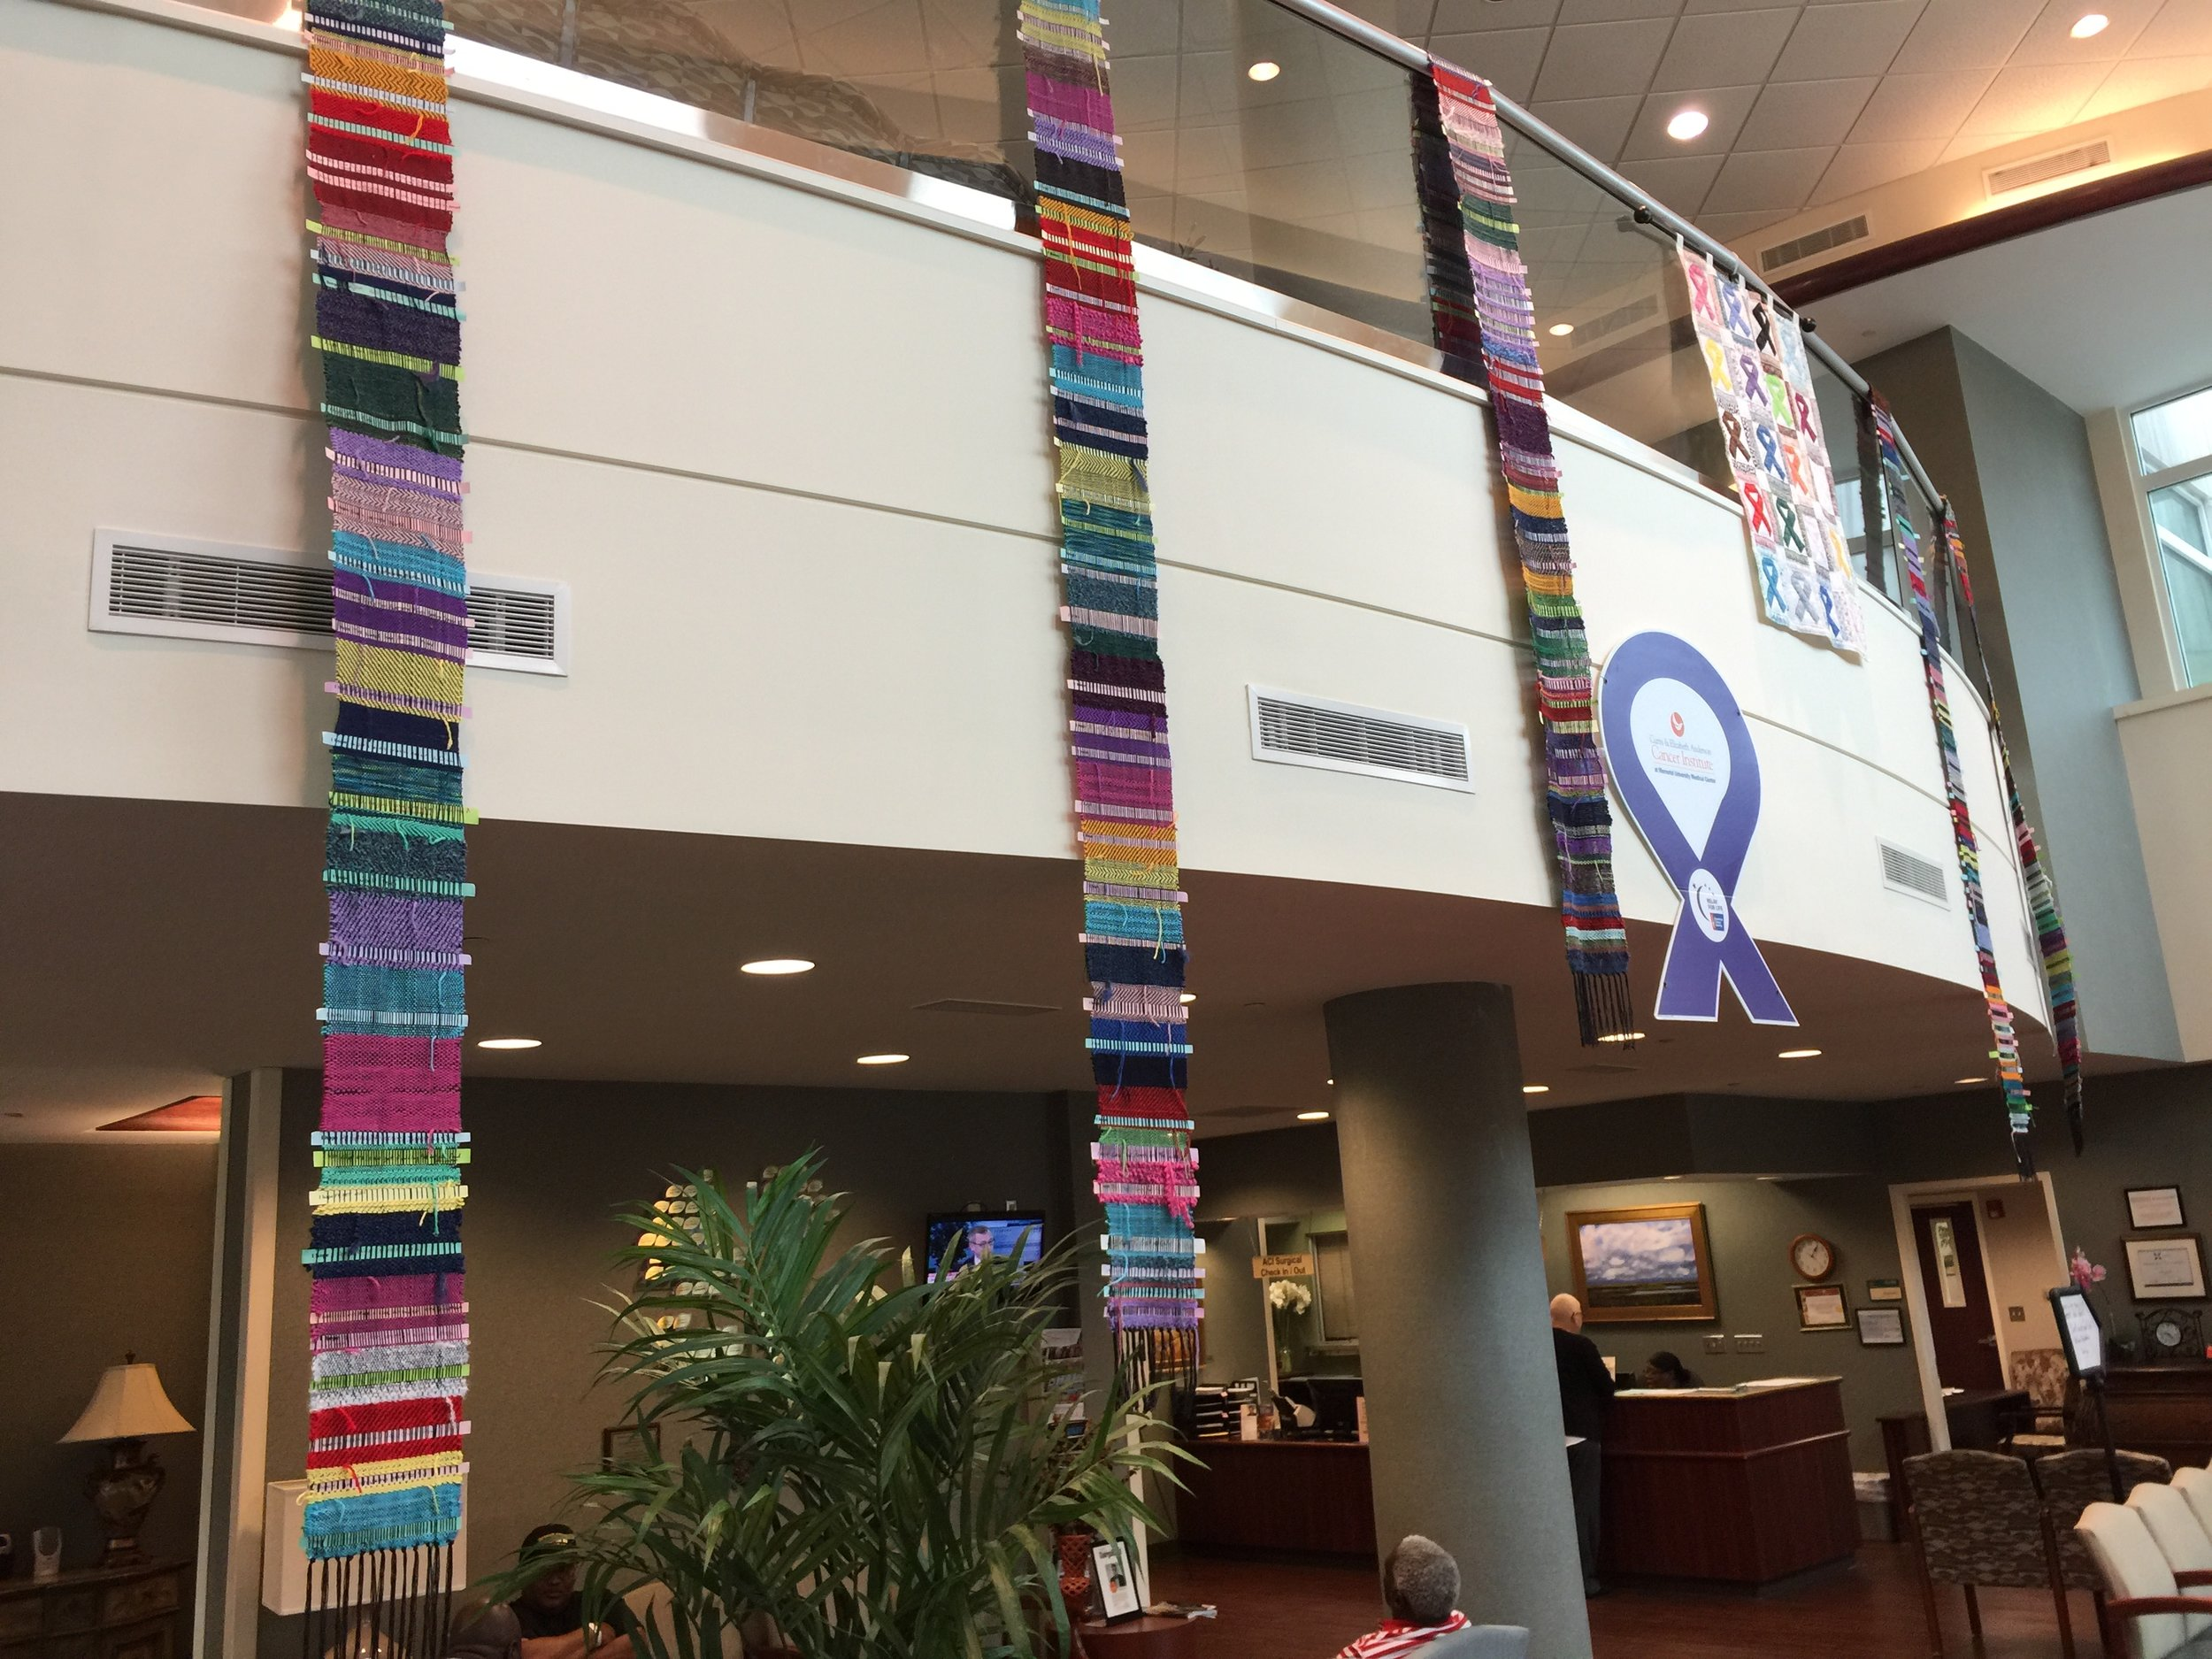 Weaving HOPE - Members of the Fiber Guild of the Savannahs have been working on the Weaving HOPE project at the Anderson Cancer Institute at Memorial Hospital.  Using donated colorful yarns on a simple cotton carpet warp members encourage patients and caregivers to help weave banners than hang in the atrium waiting room. One of the guild's portable 4 shaft Dorset looms is loaned to the institute for this project.  Those waiting are encouraged to complete the sentence